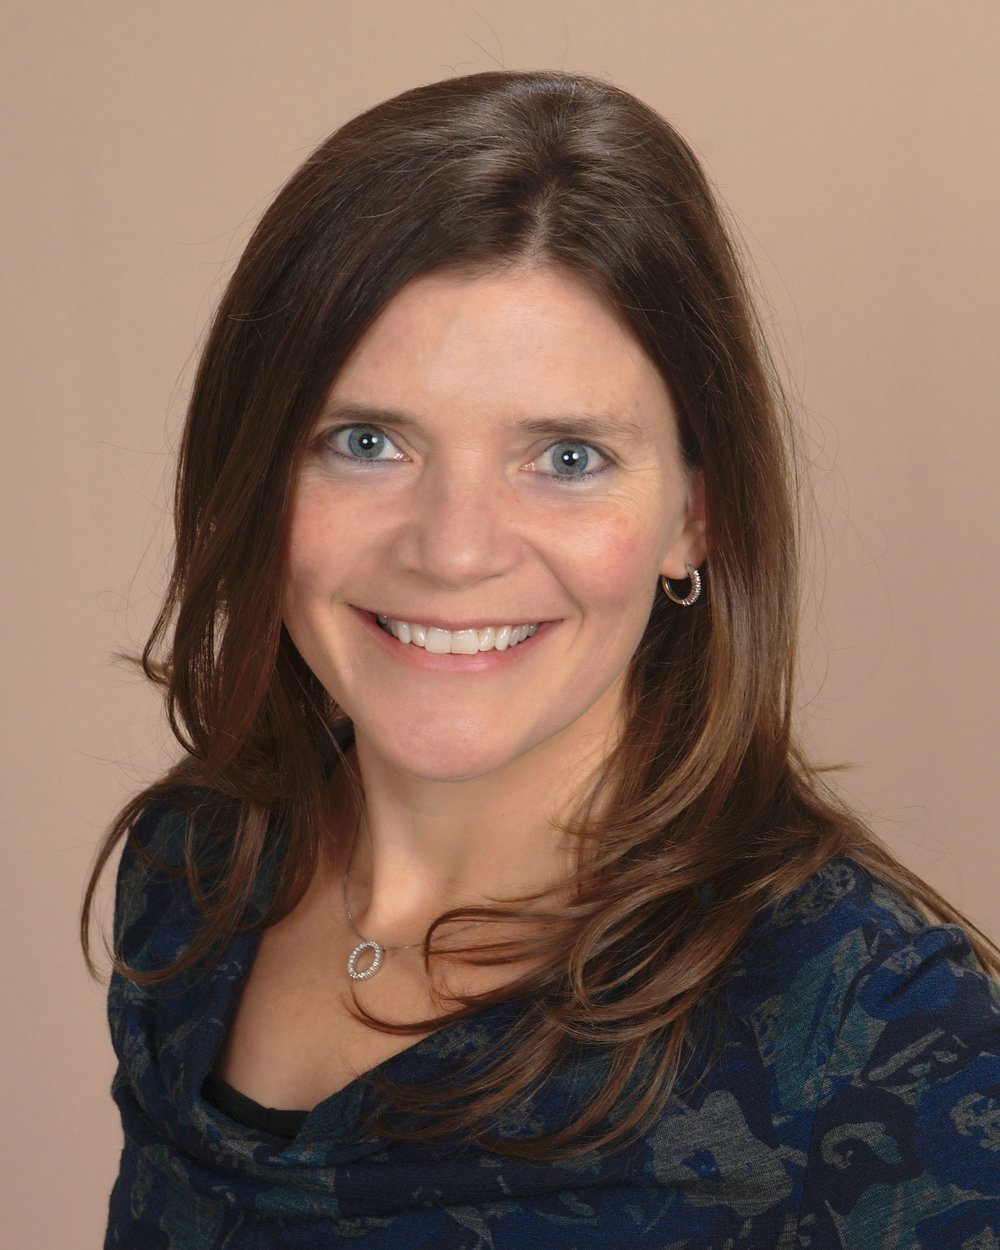 Jennifer Craig, BA, EMP, LHWC - Energy Medicine Practitioner and Well-Being Trainer